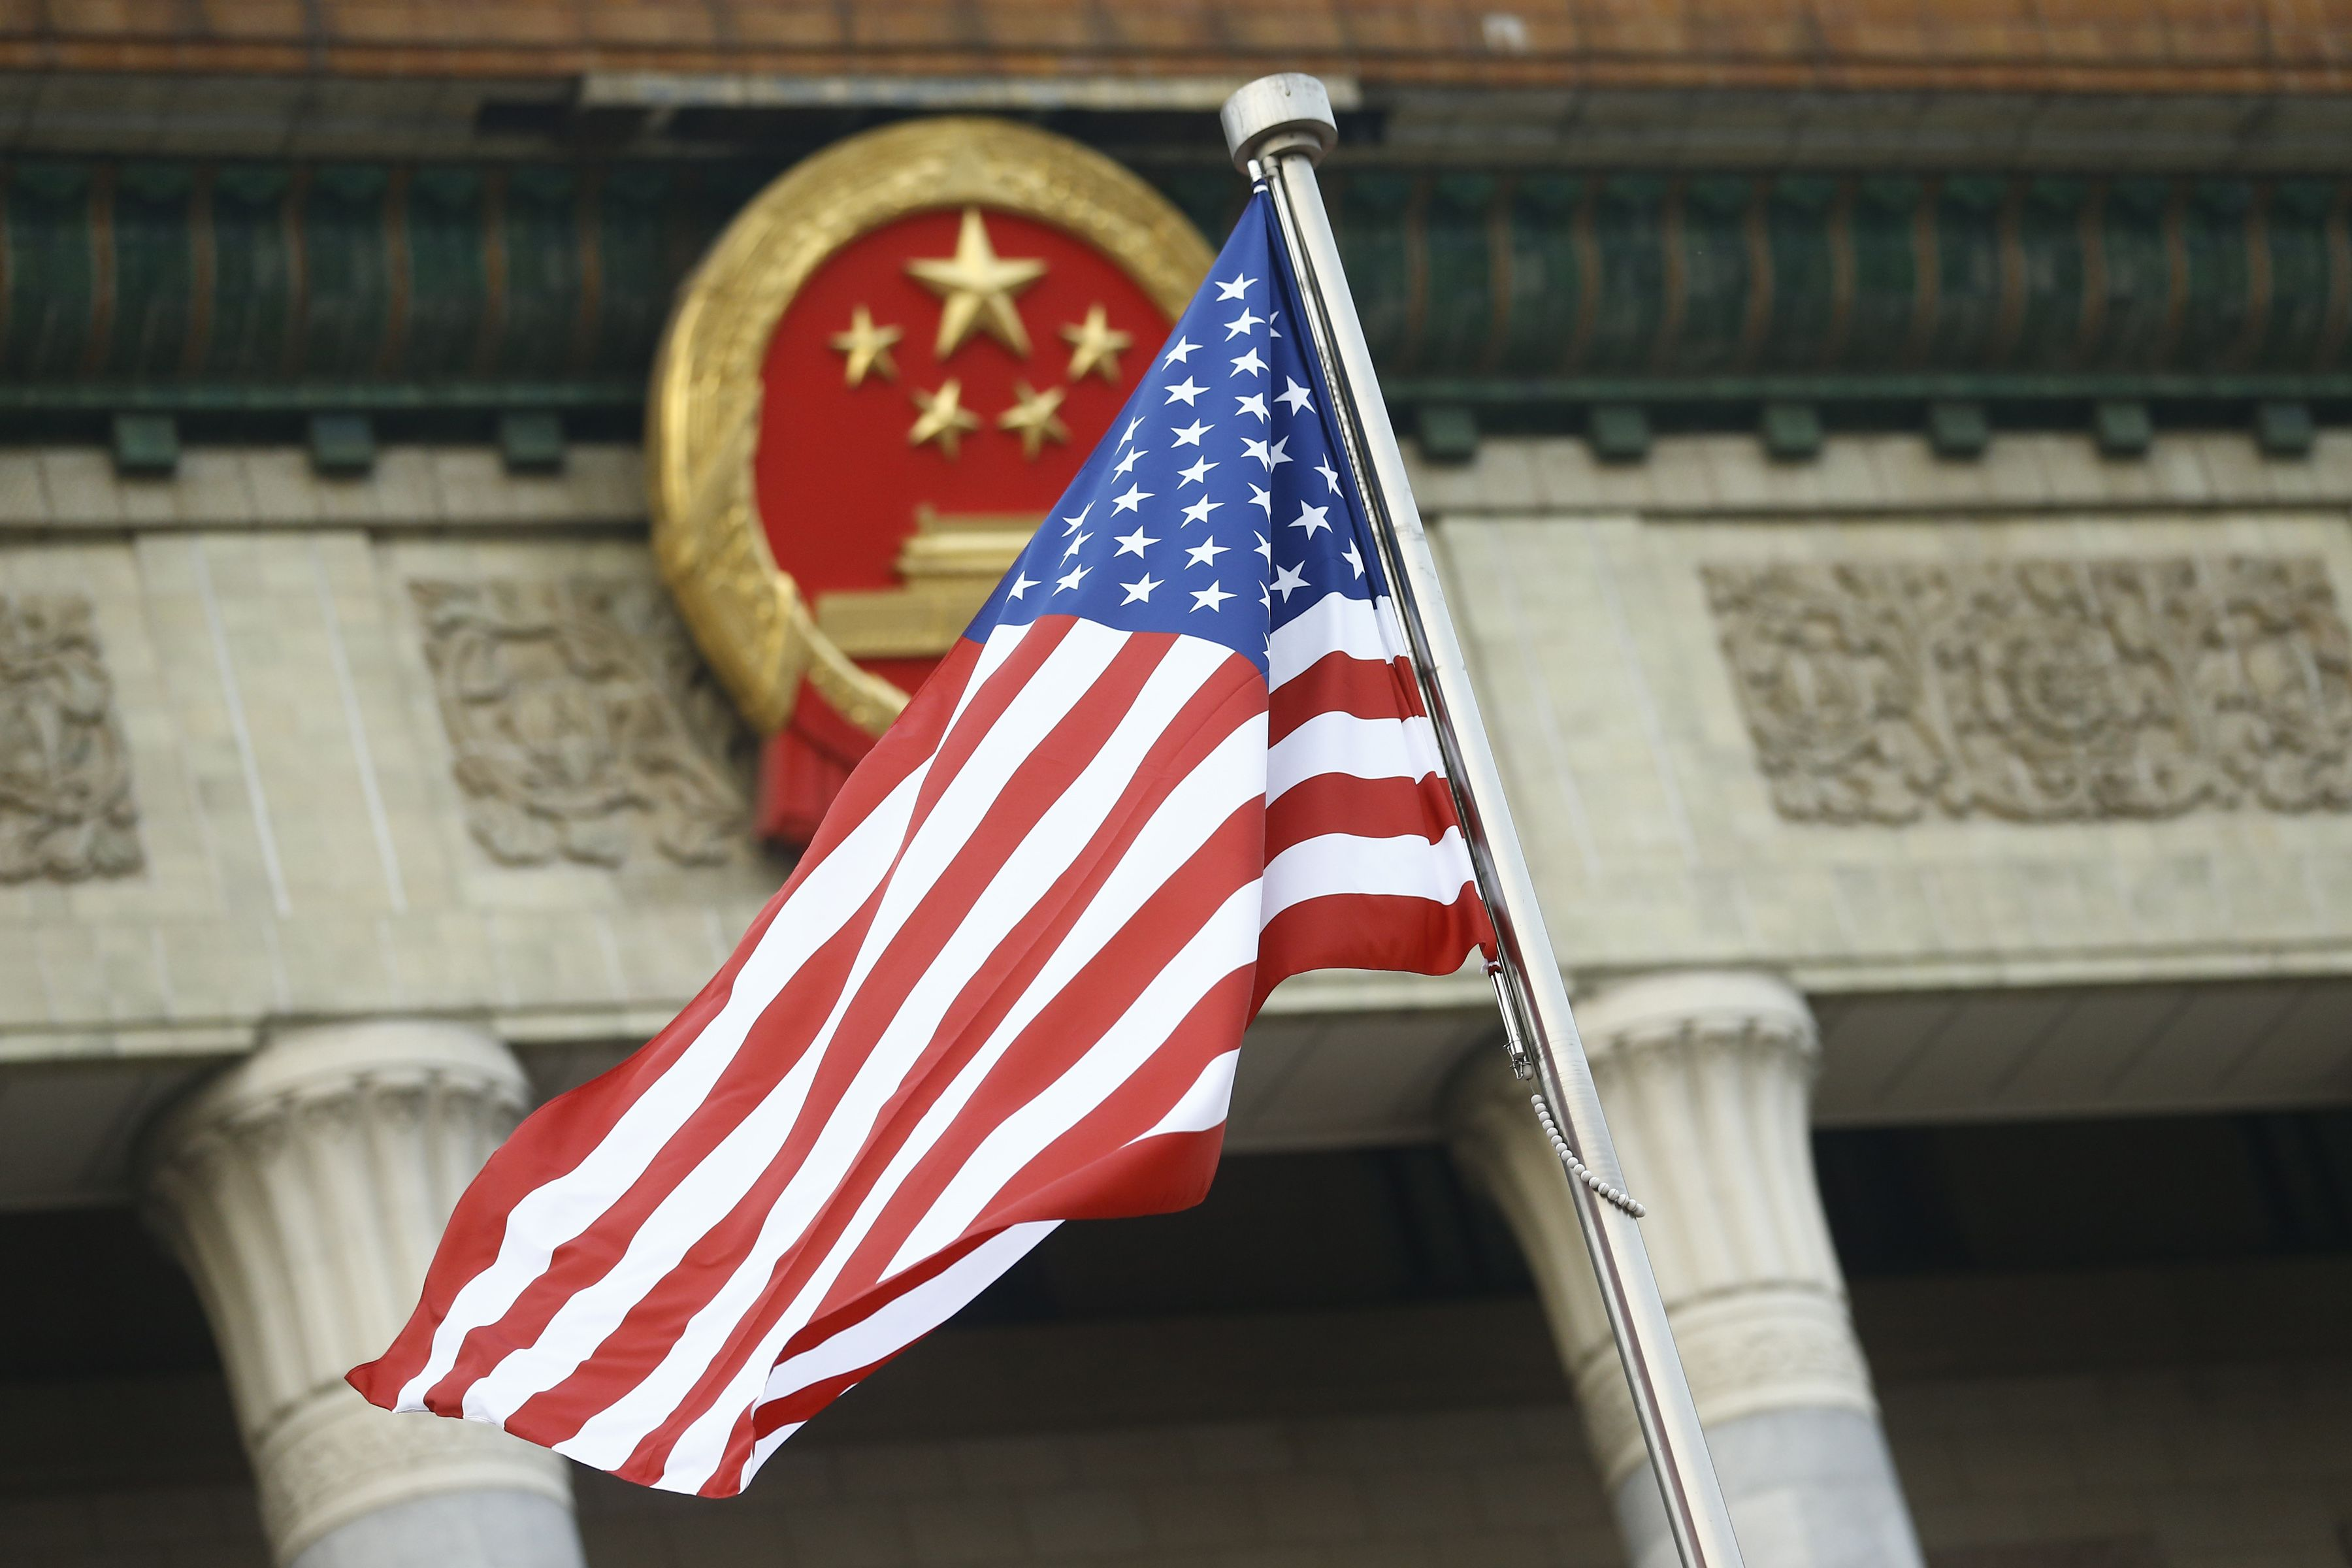 Koch Industries executive interrogated in China, report says